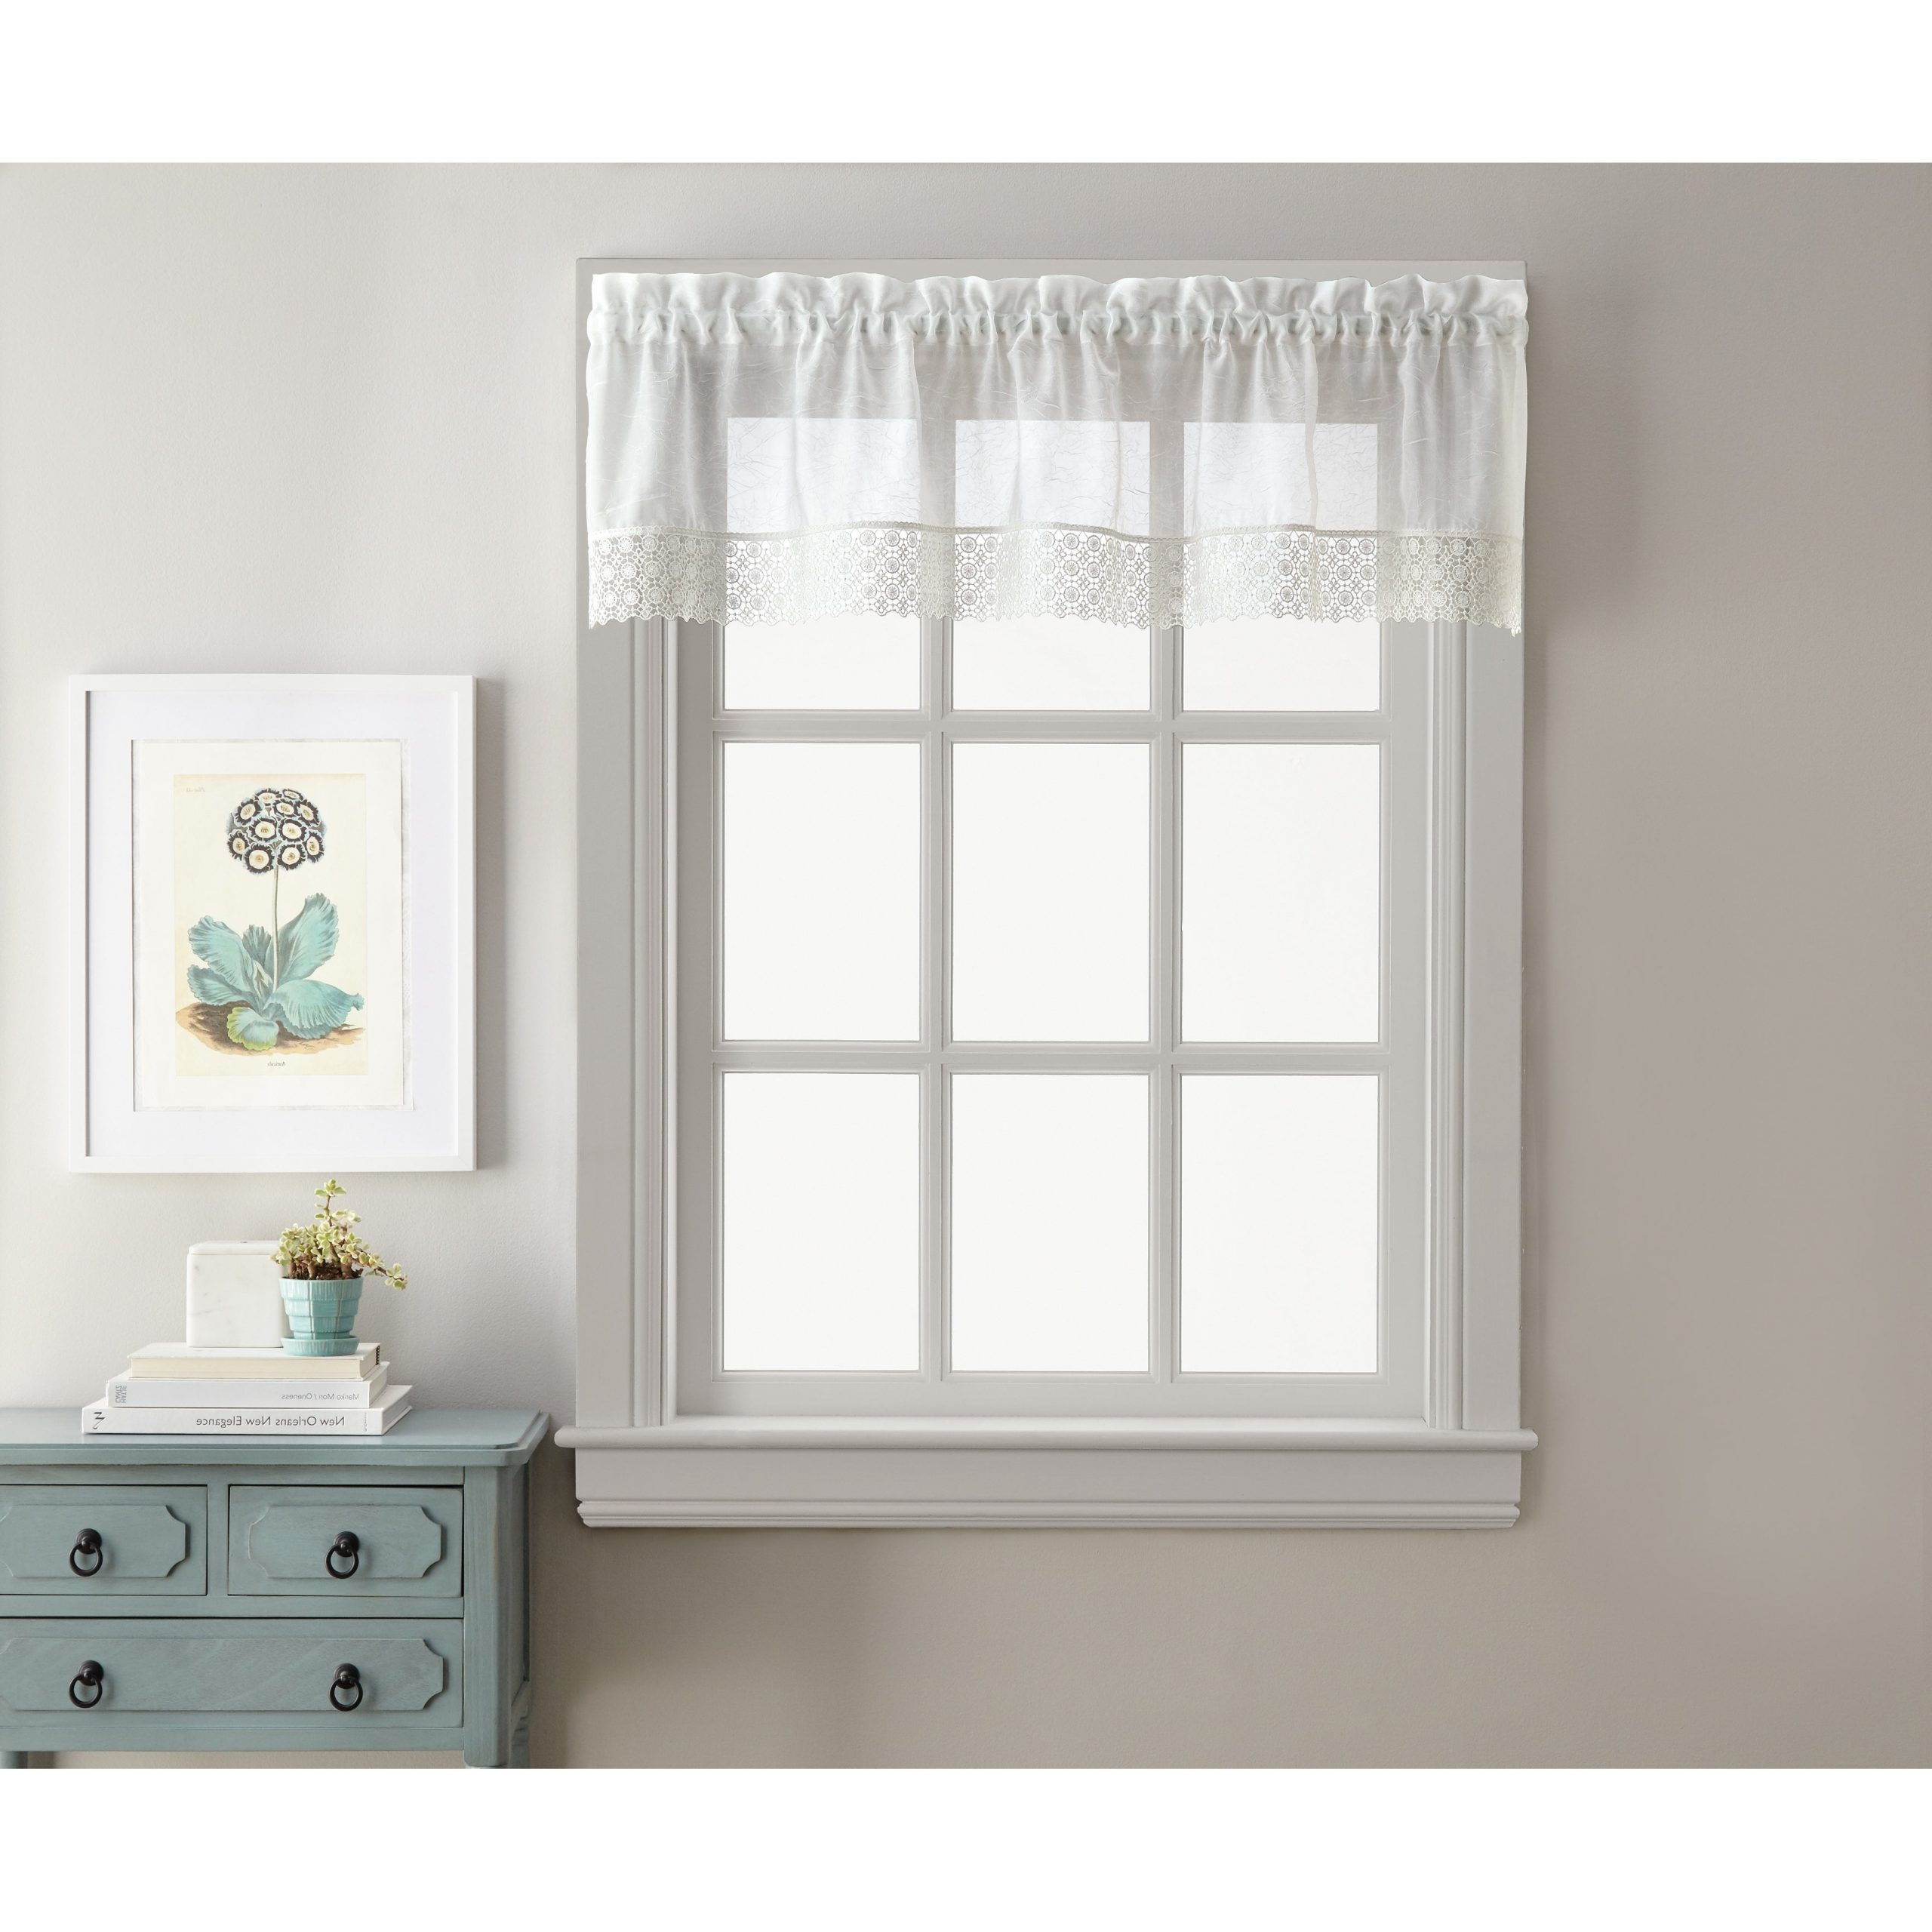 Popular Sweet Adele White Tailored Valance And Tier Pair Curtain Collection Regarding Touch Of Spring 24 Inch Tier Pairs (View 10 of 20)